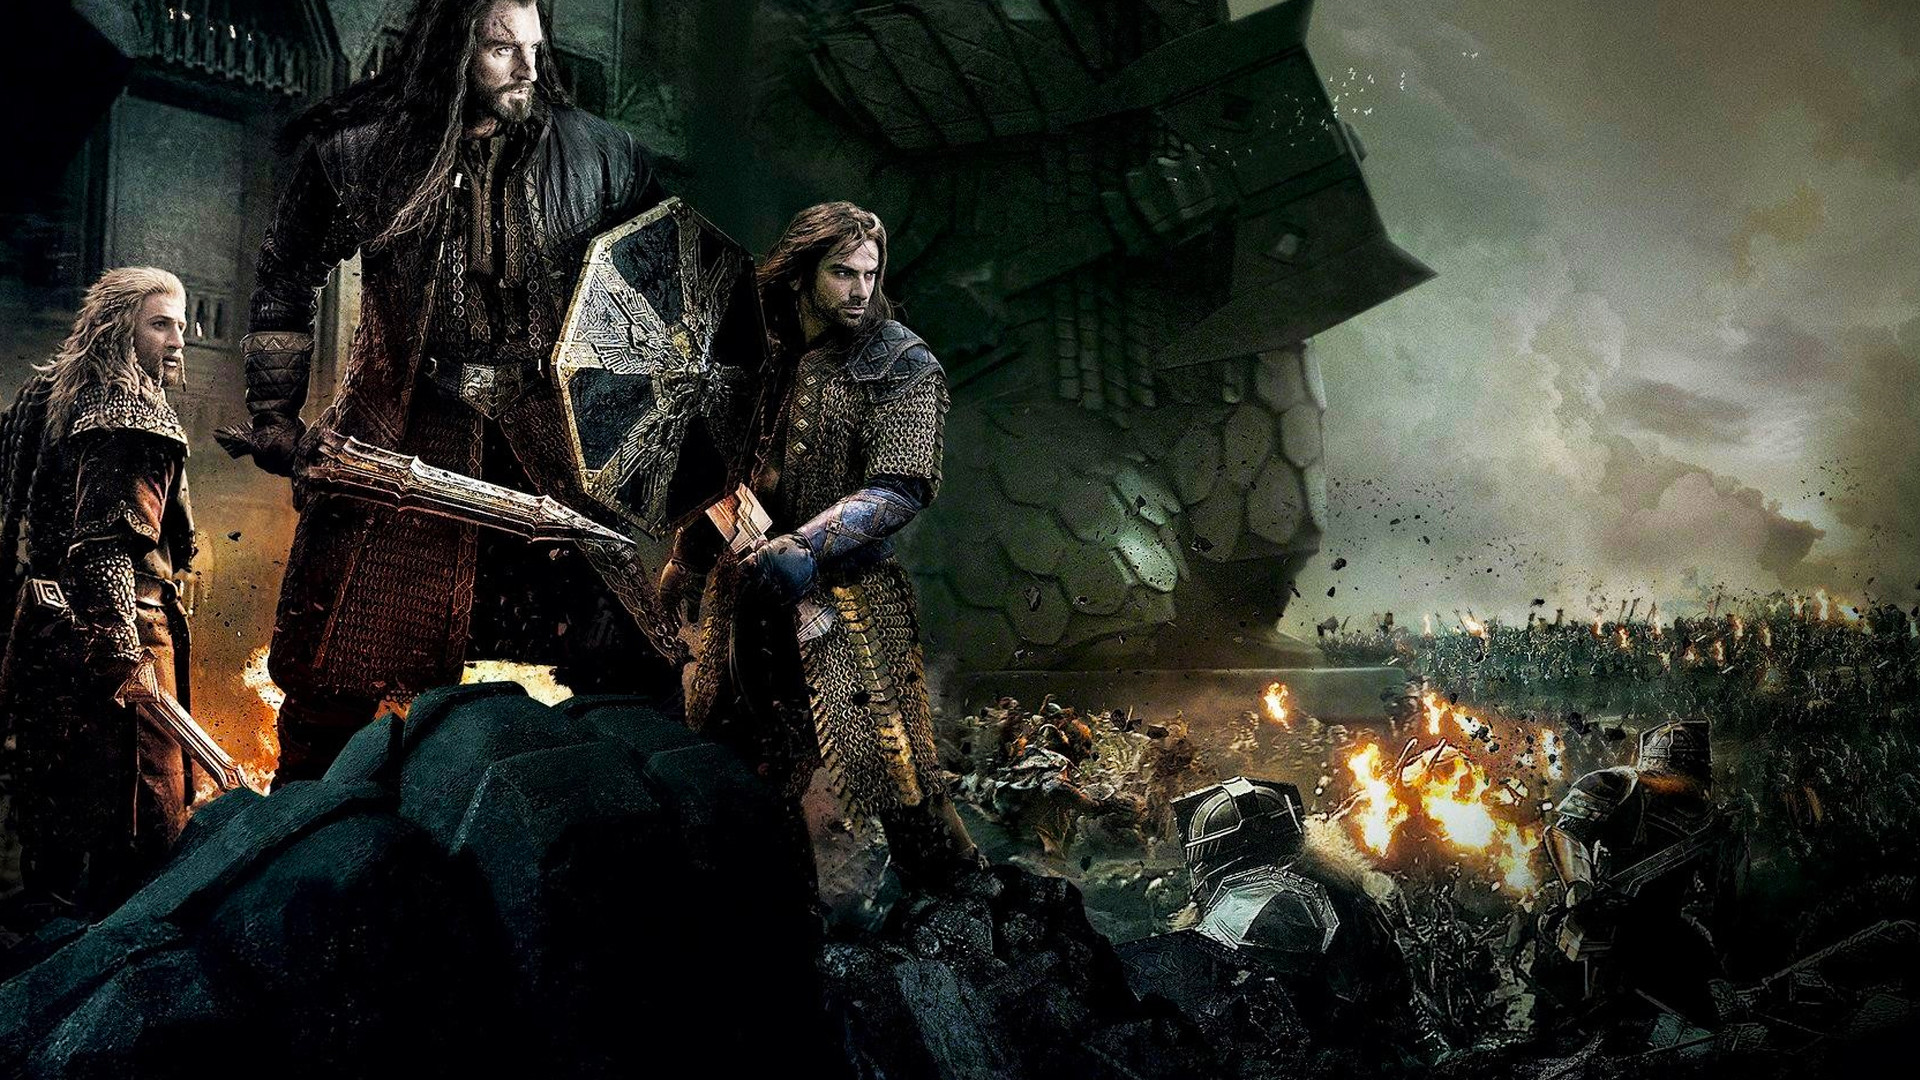 … The Hobbit: Battle of the Five Armies Wallpaper by sachso74